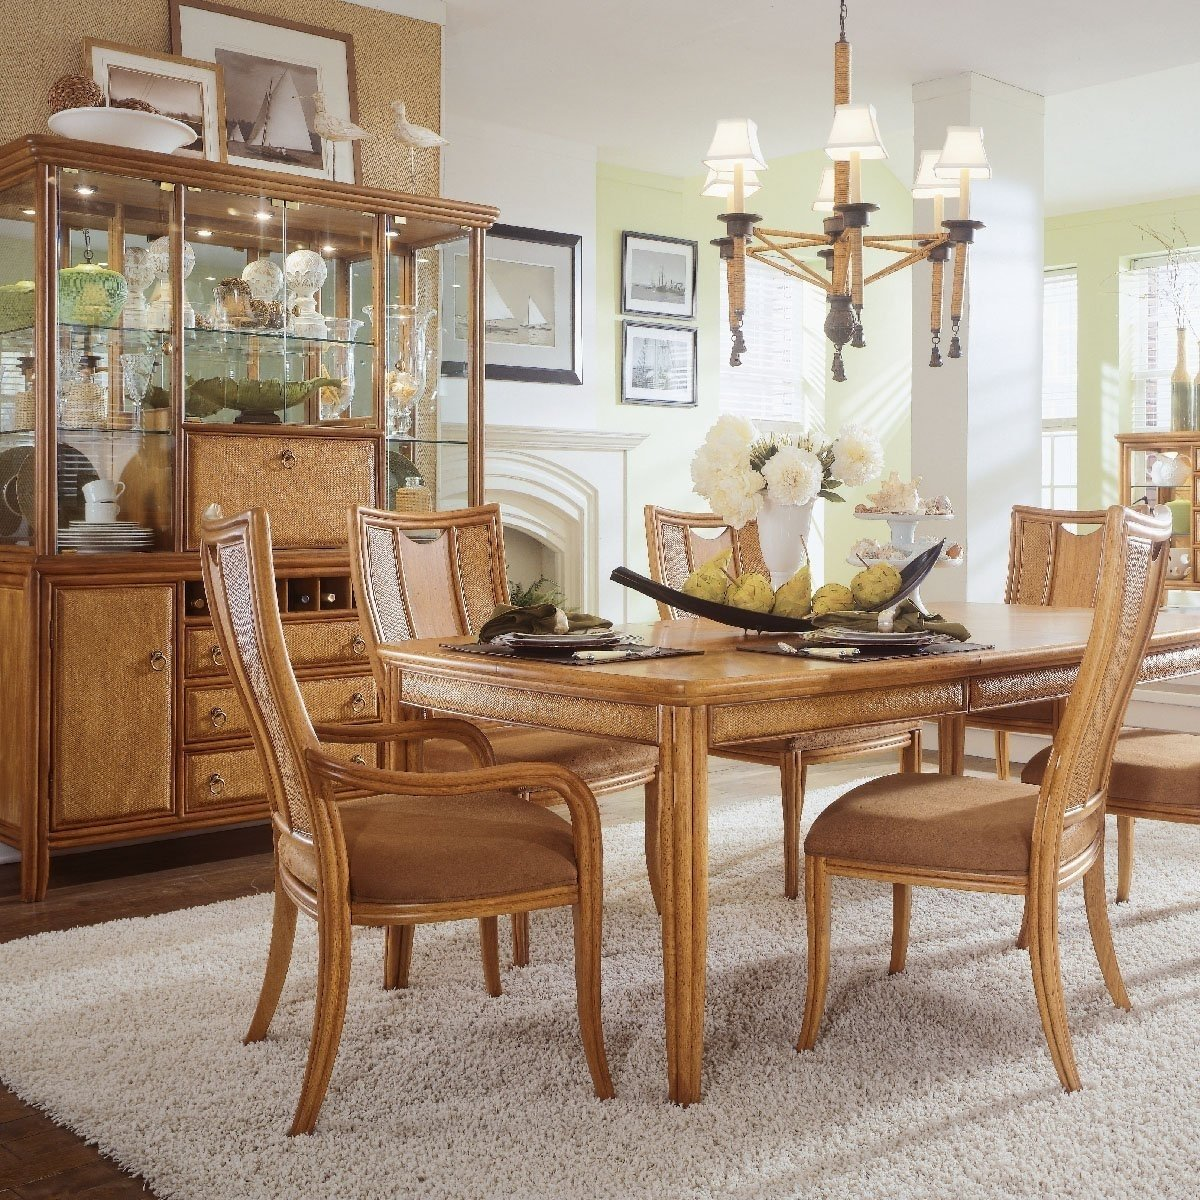 10 Elegant Dining Room Table Decorating Ideas Pictures dining room table centerpiece grousedays